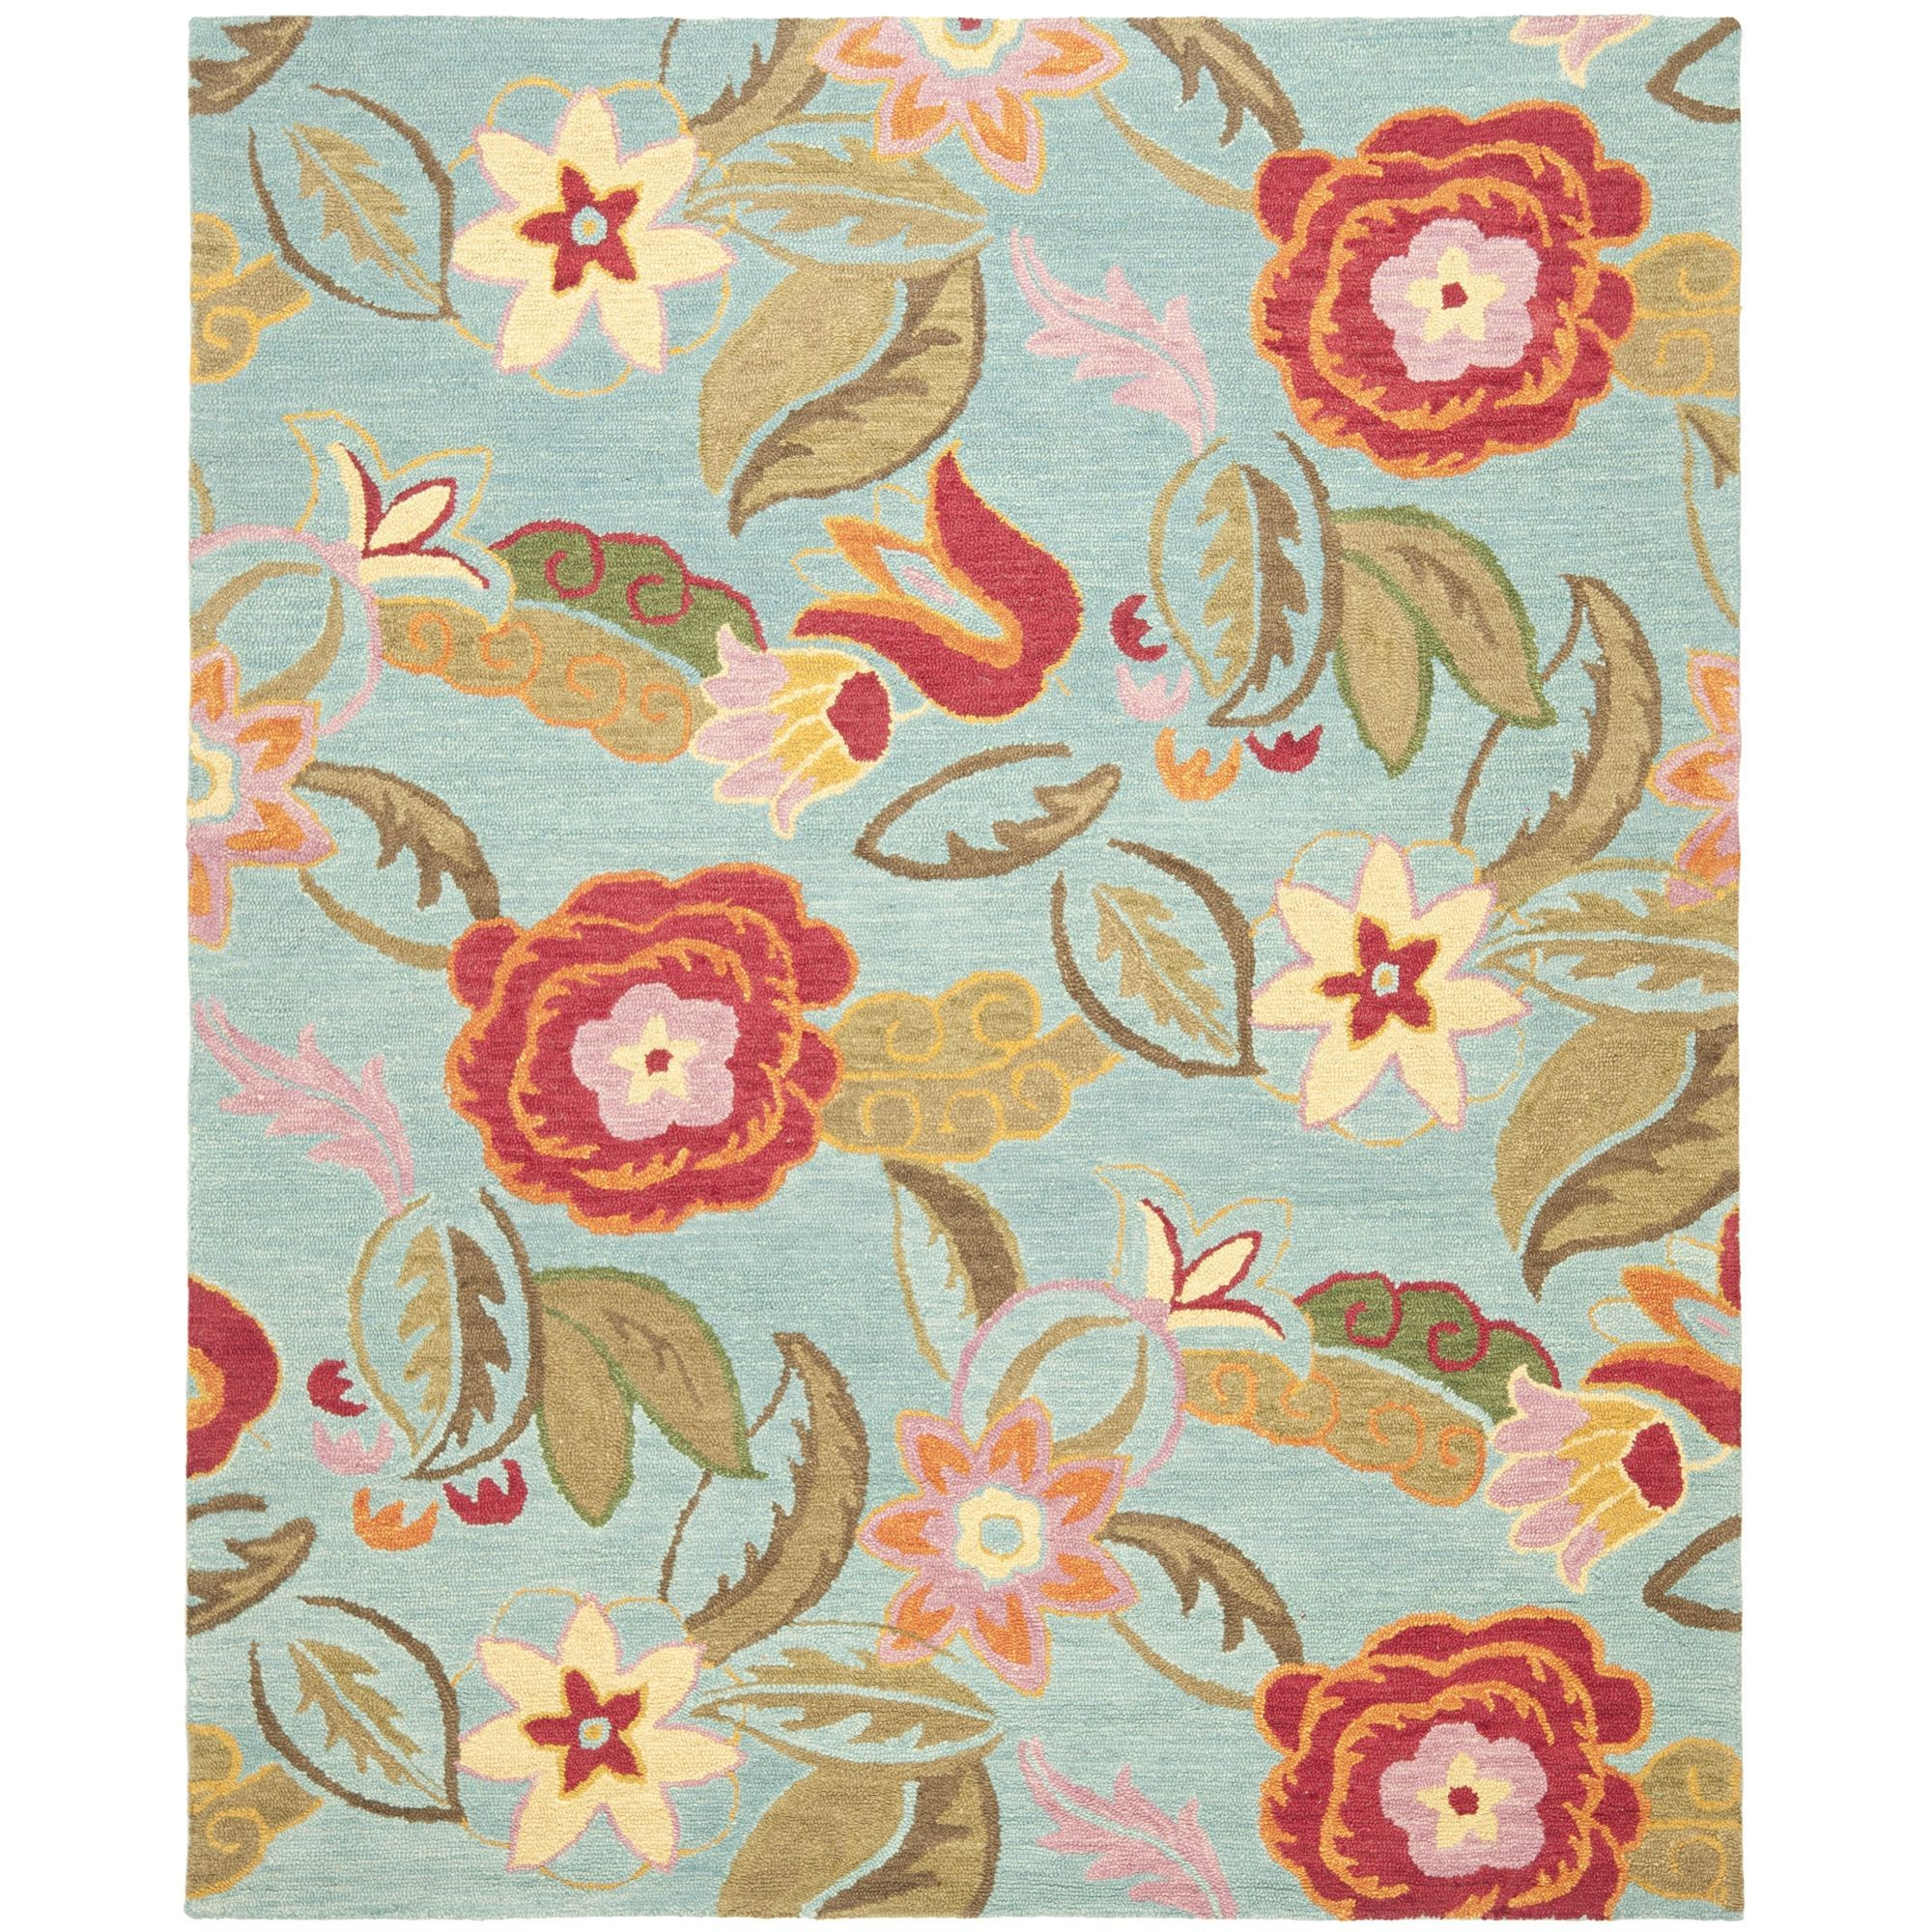 Safavieh Handmade Blossom Blue Wool Area Rug ((8 ft. Square)), Size 8' x 8' (Cotton, Floral)